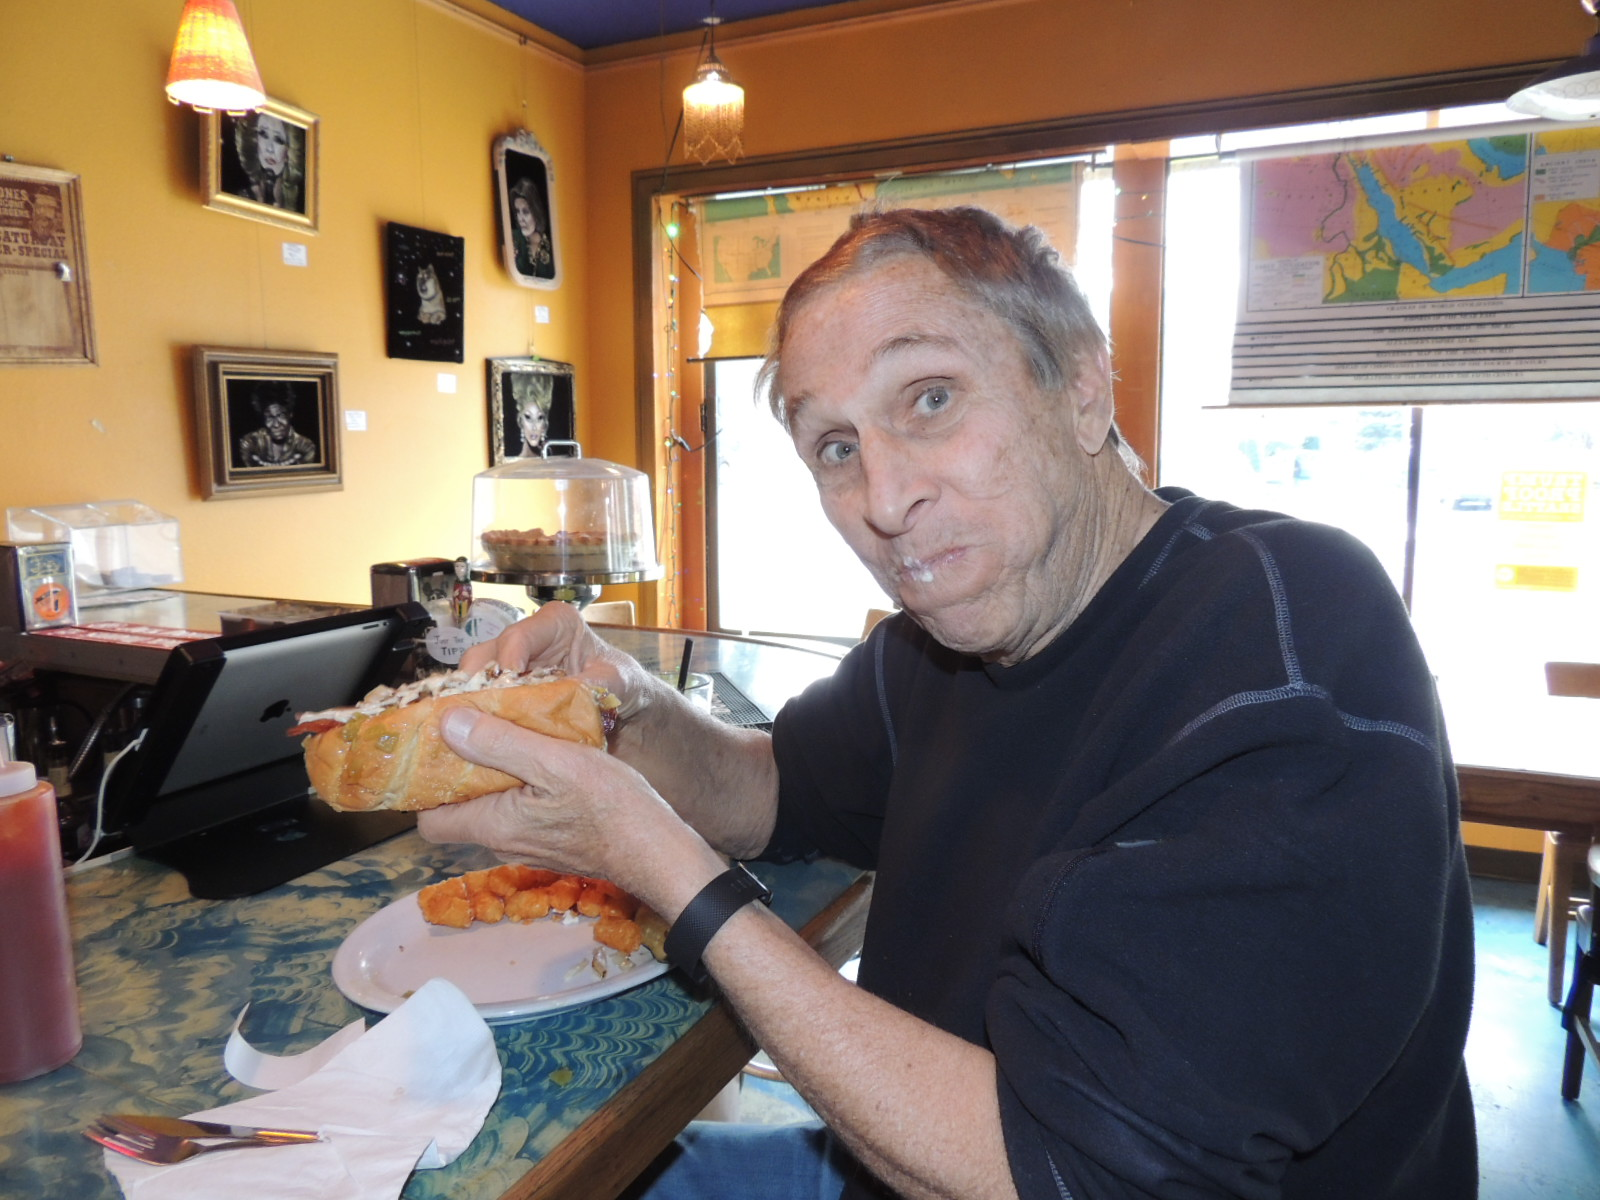 Bruce Wienke preparing to consume one of Cafe Racer's Wonder Wiener.